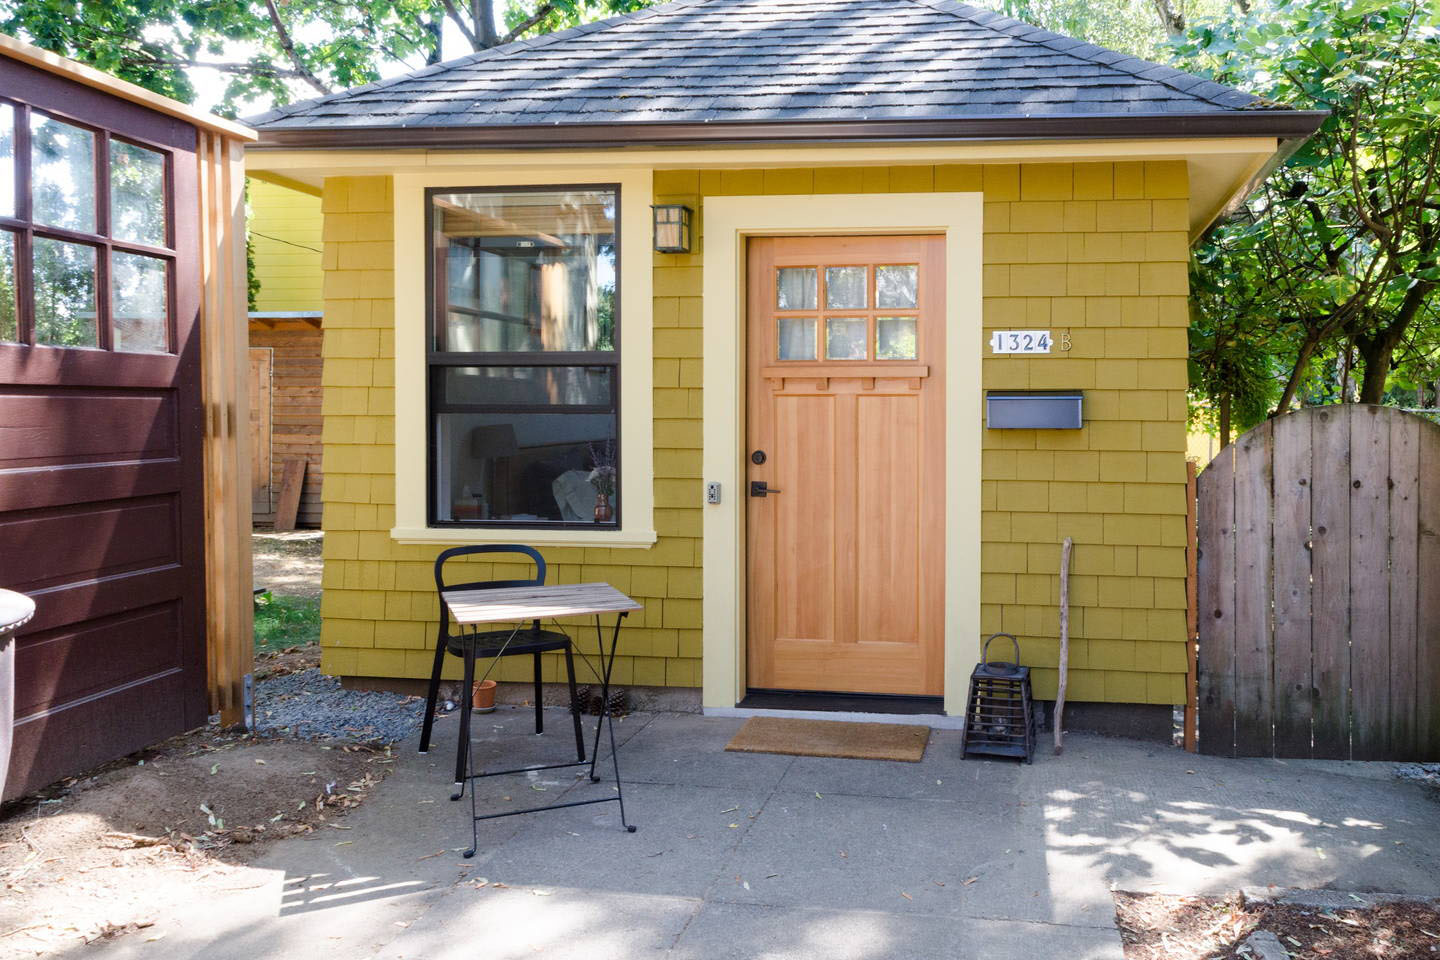 Charming Studio Apartment In A Tiny Backyard House